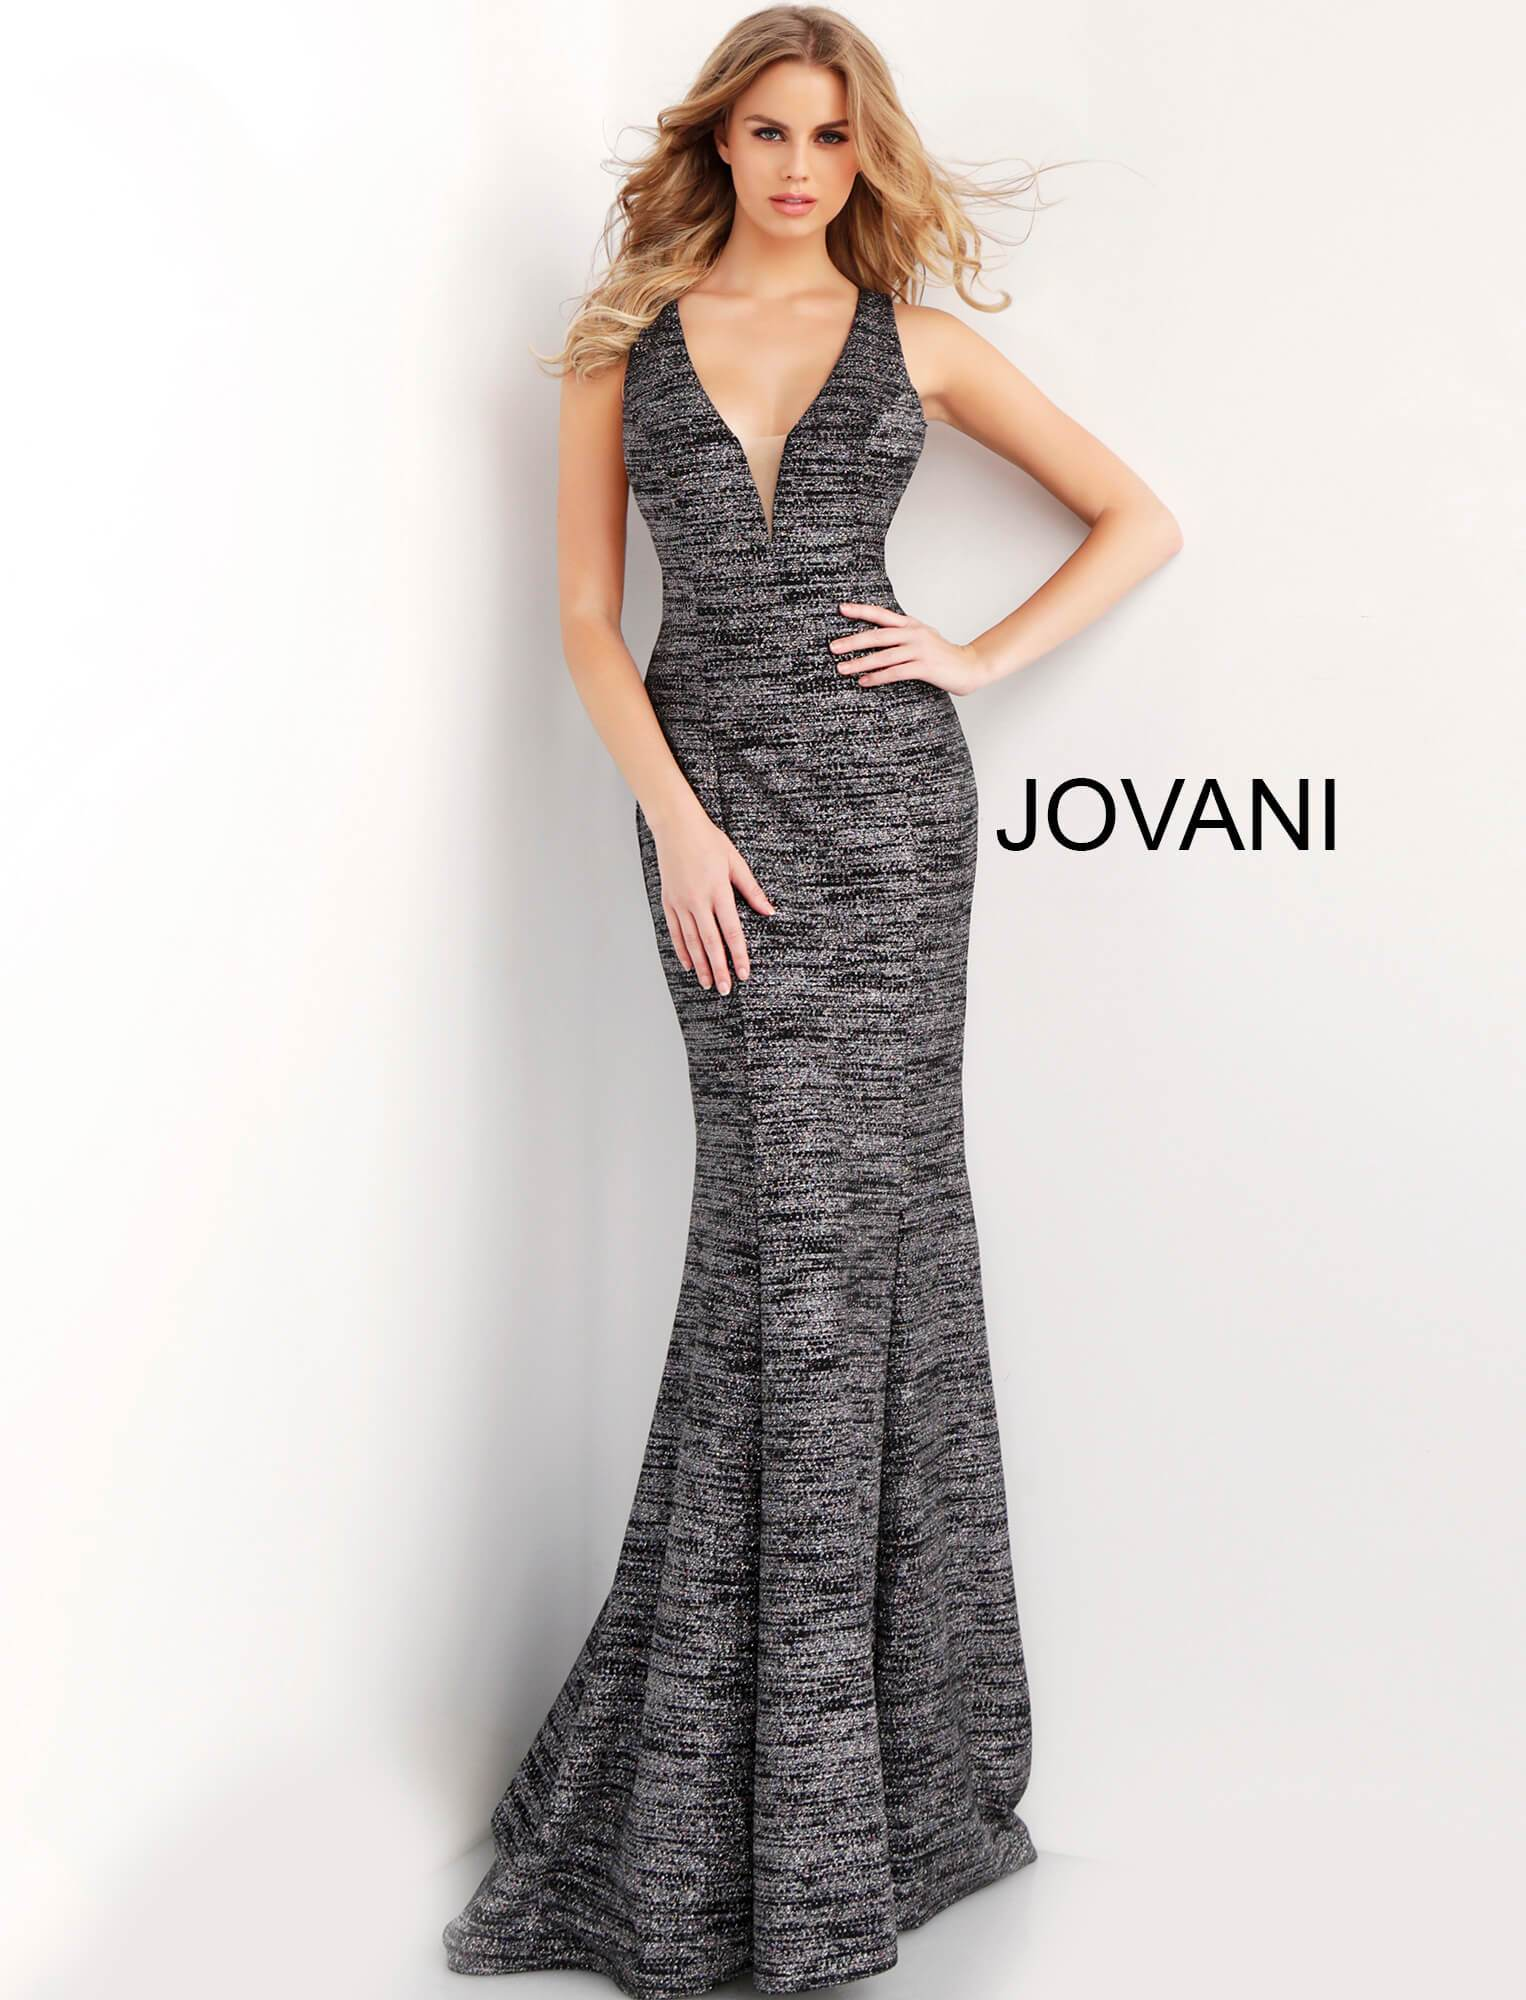 Jovani Glitter Jersey Plunging Neckline Gown - Gissings Boutique